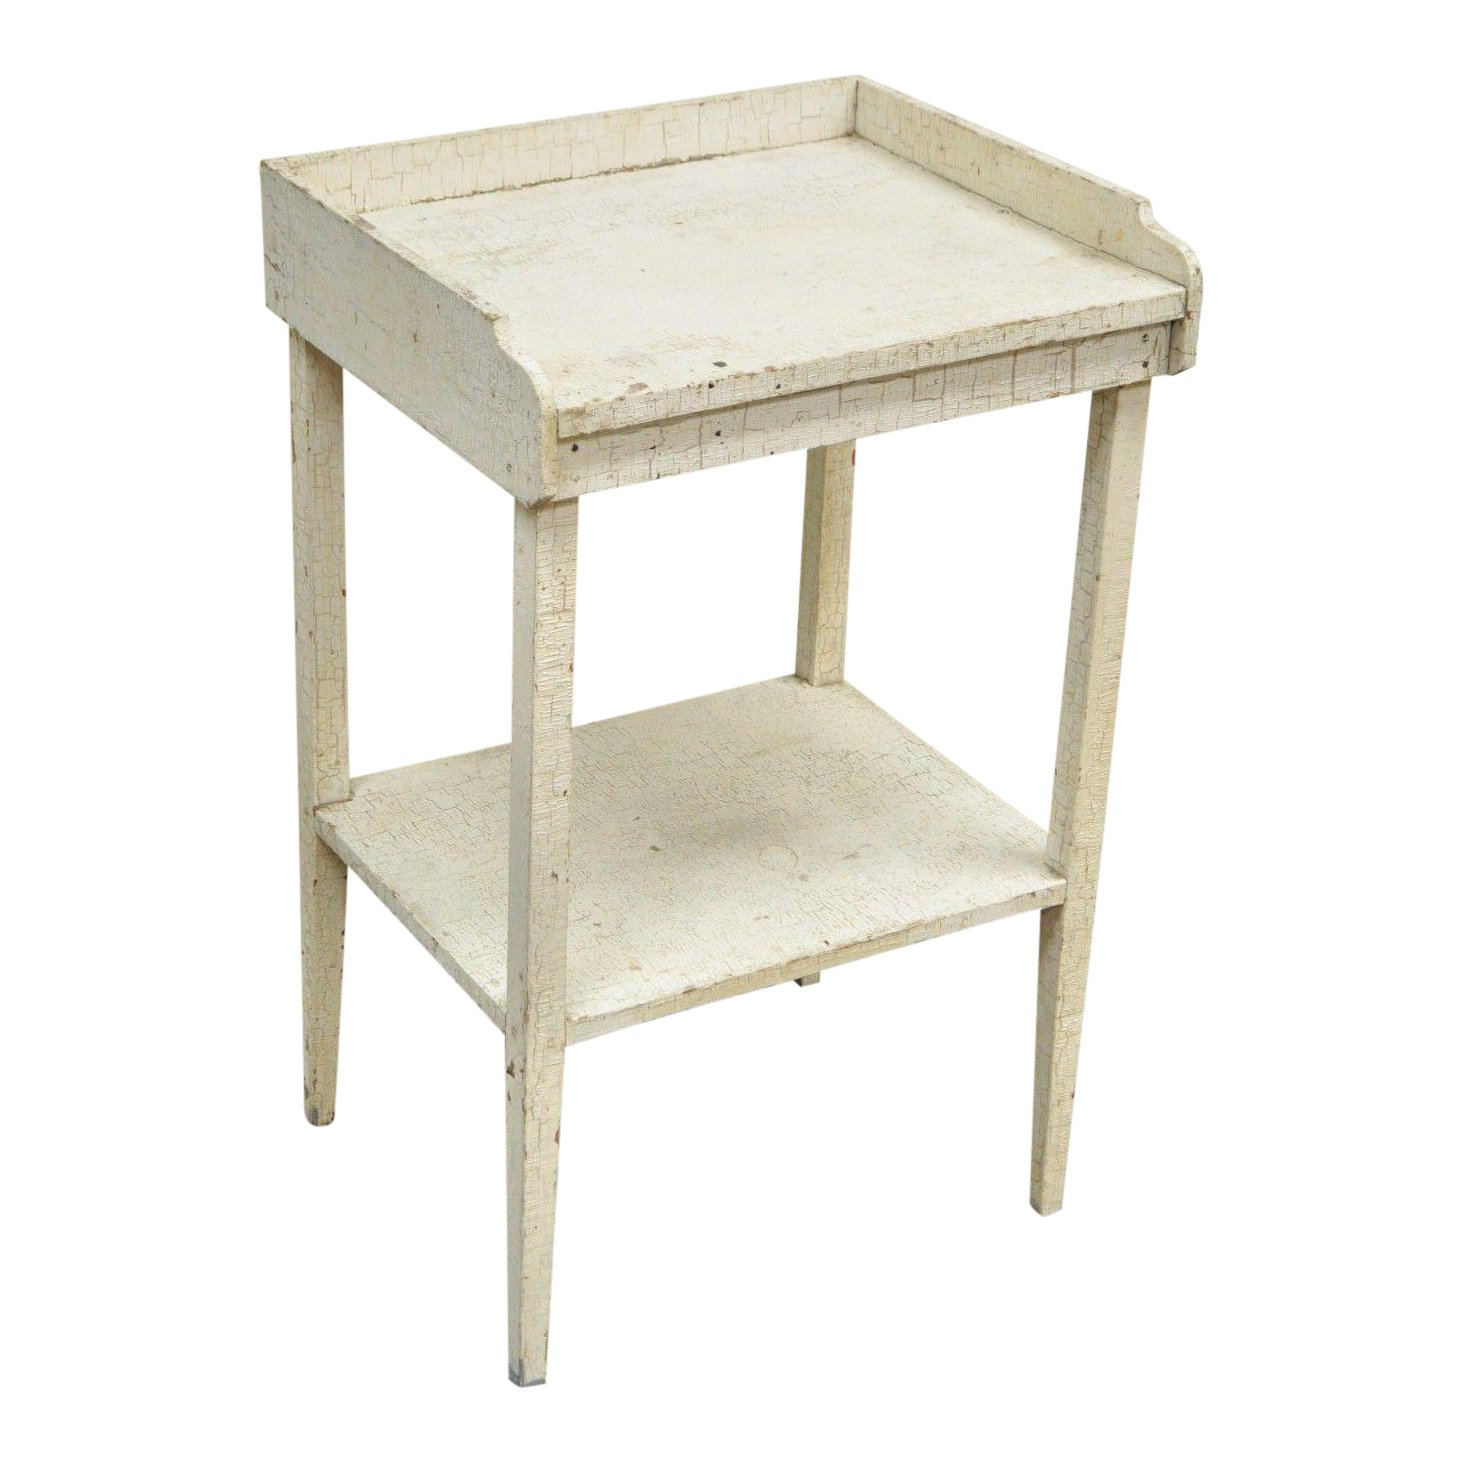 antique white distress painted pine tier accent side table rustic primitive chairish small battery operated lamps large silver lamp outdoor umbrella cantilever trendy circle chair